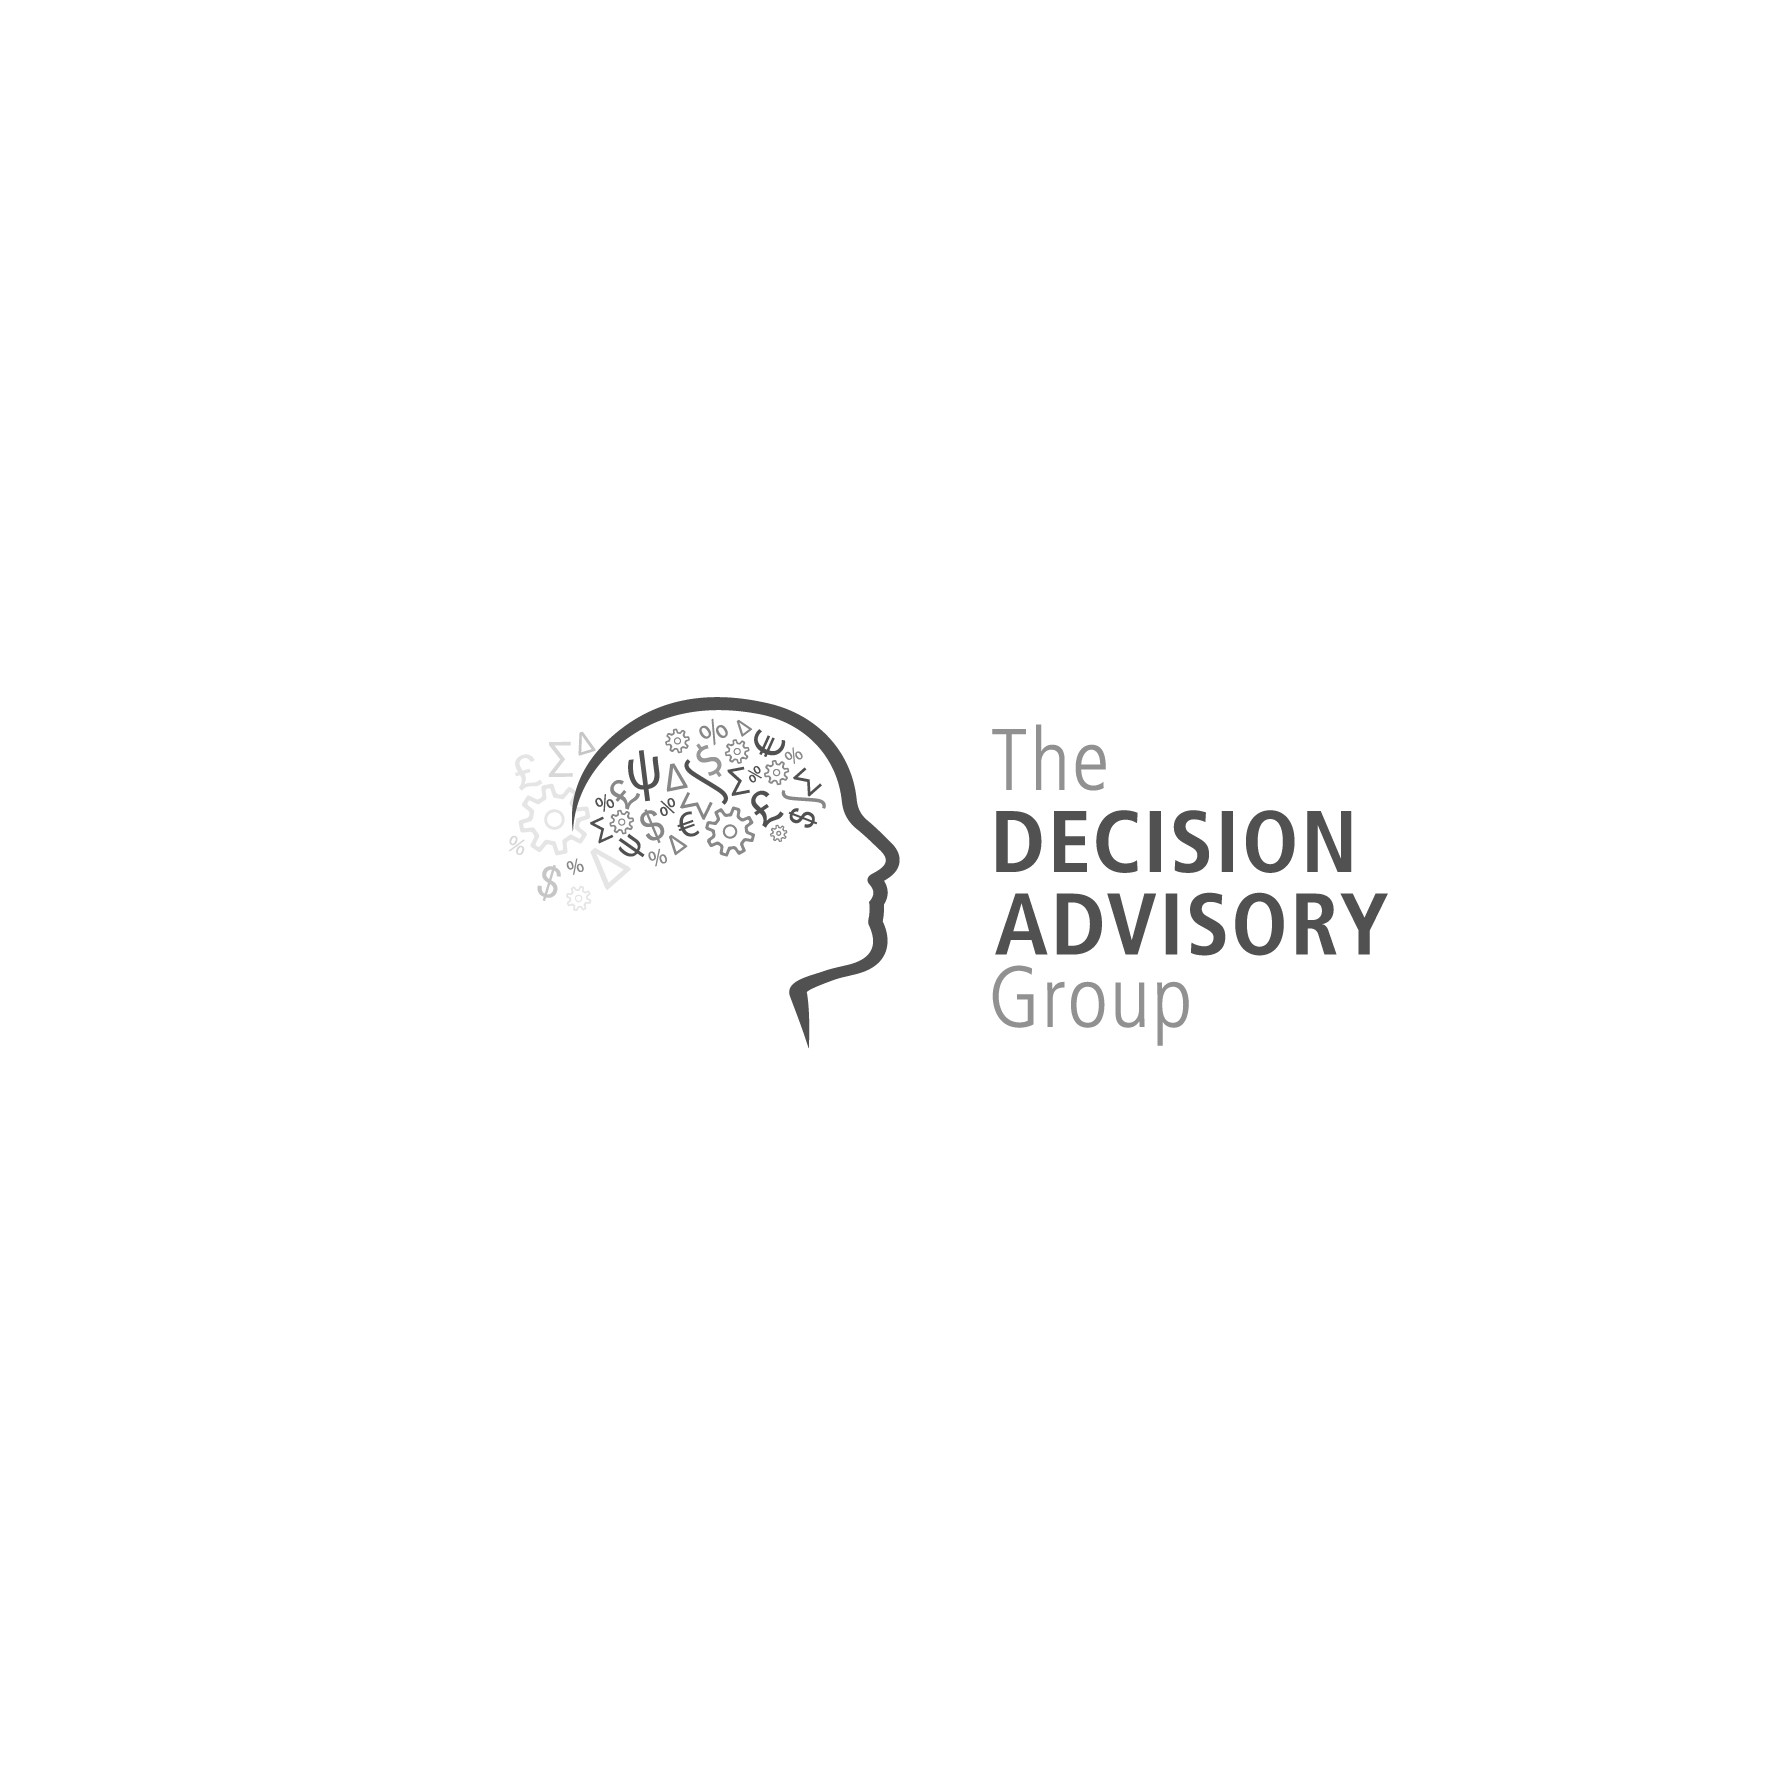 The Decision Advisory Group needs a logo